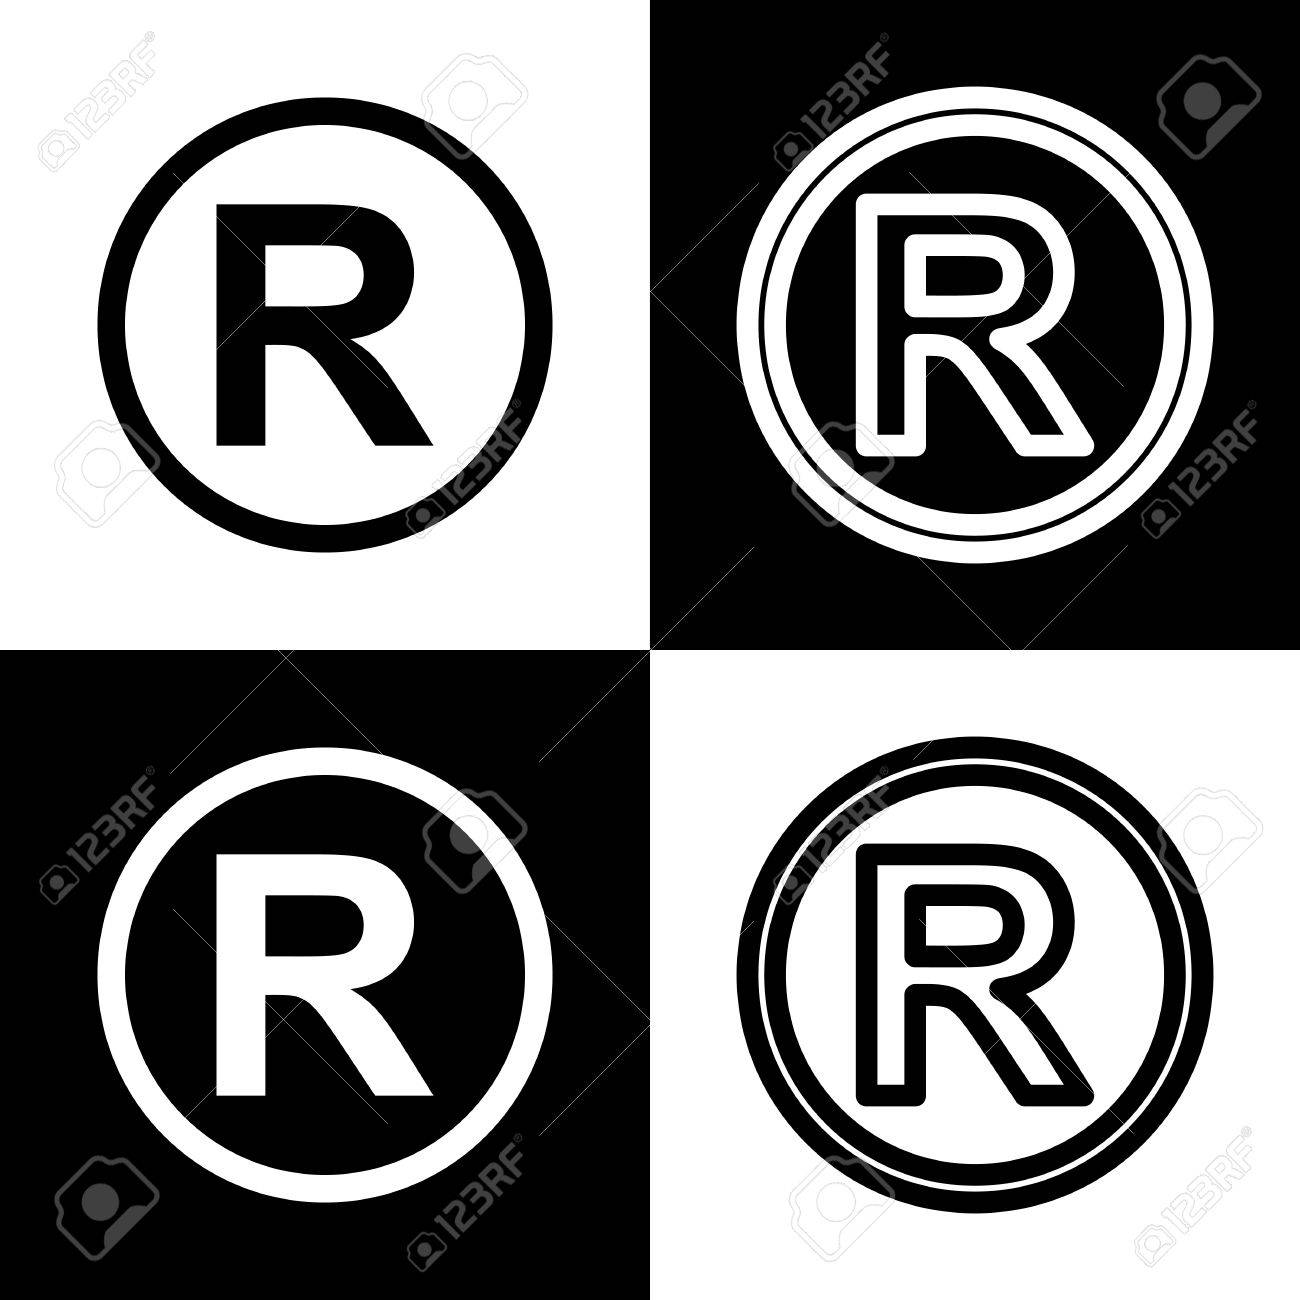 Registered Trademark Sign Vector Black And White Icons And